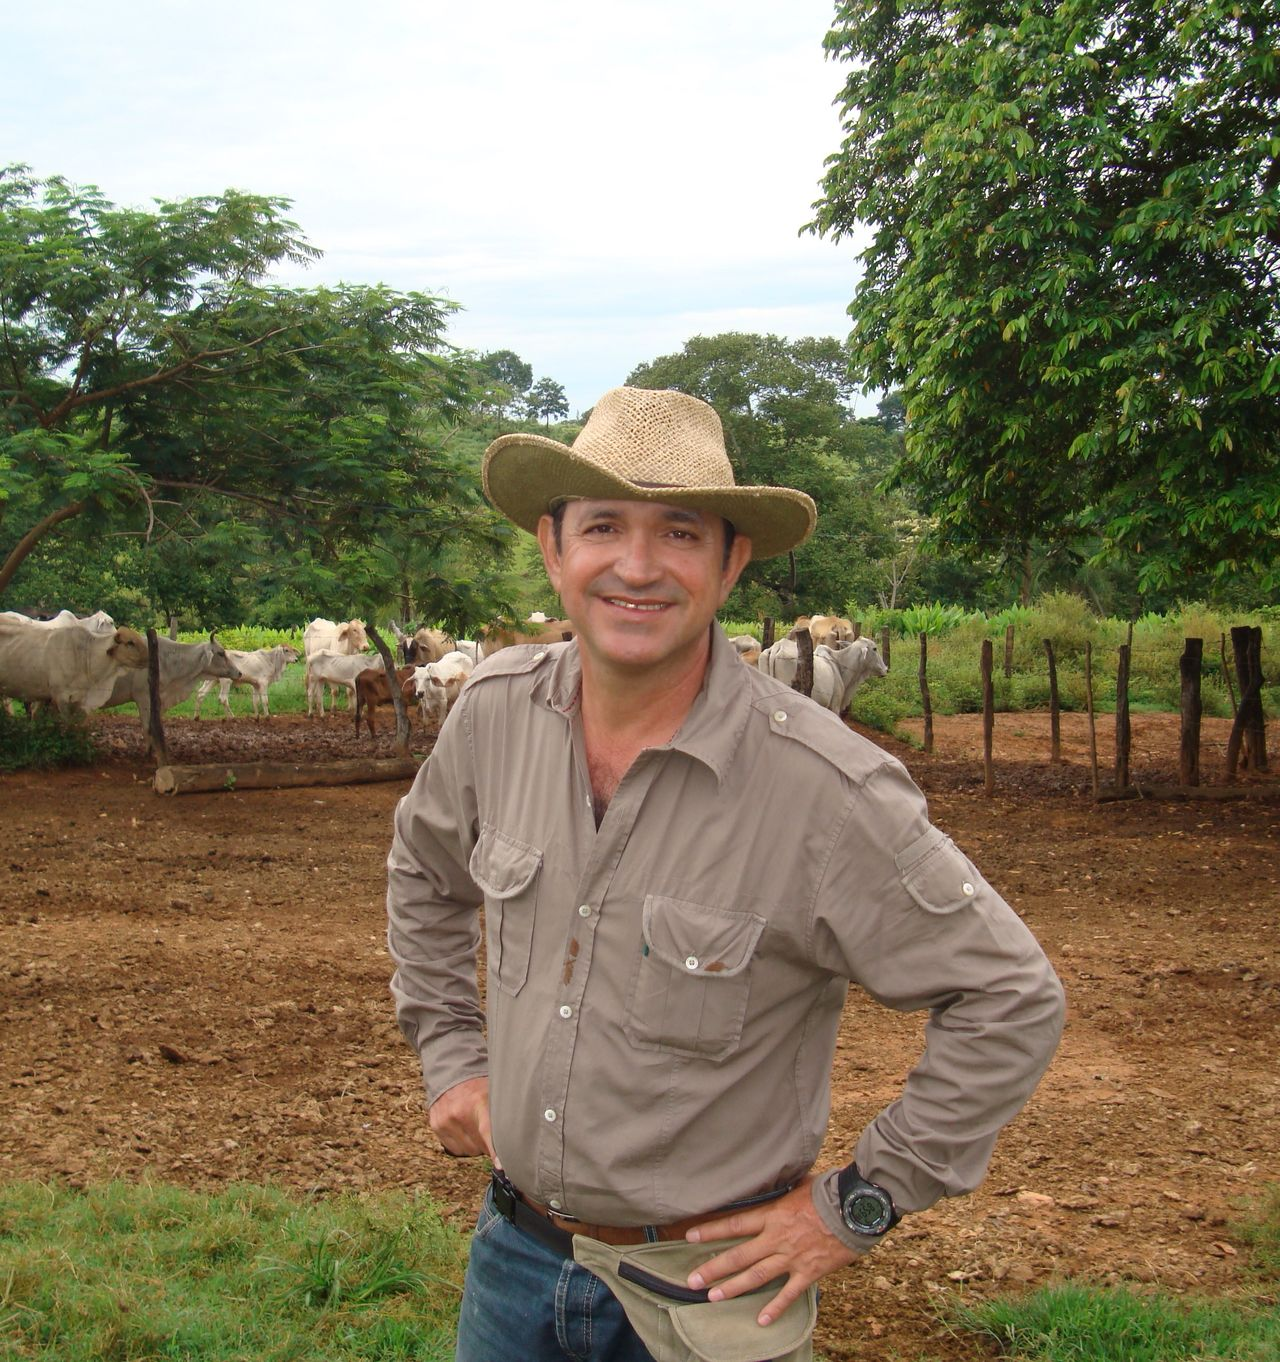 Beautiful stock photos of cowboy, Caucasian Ethnicity, Cowboy, Day, Domestic Cattle